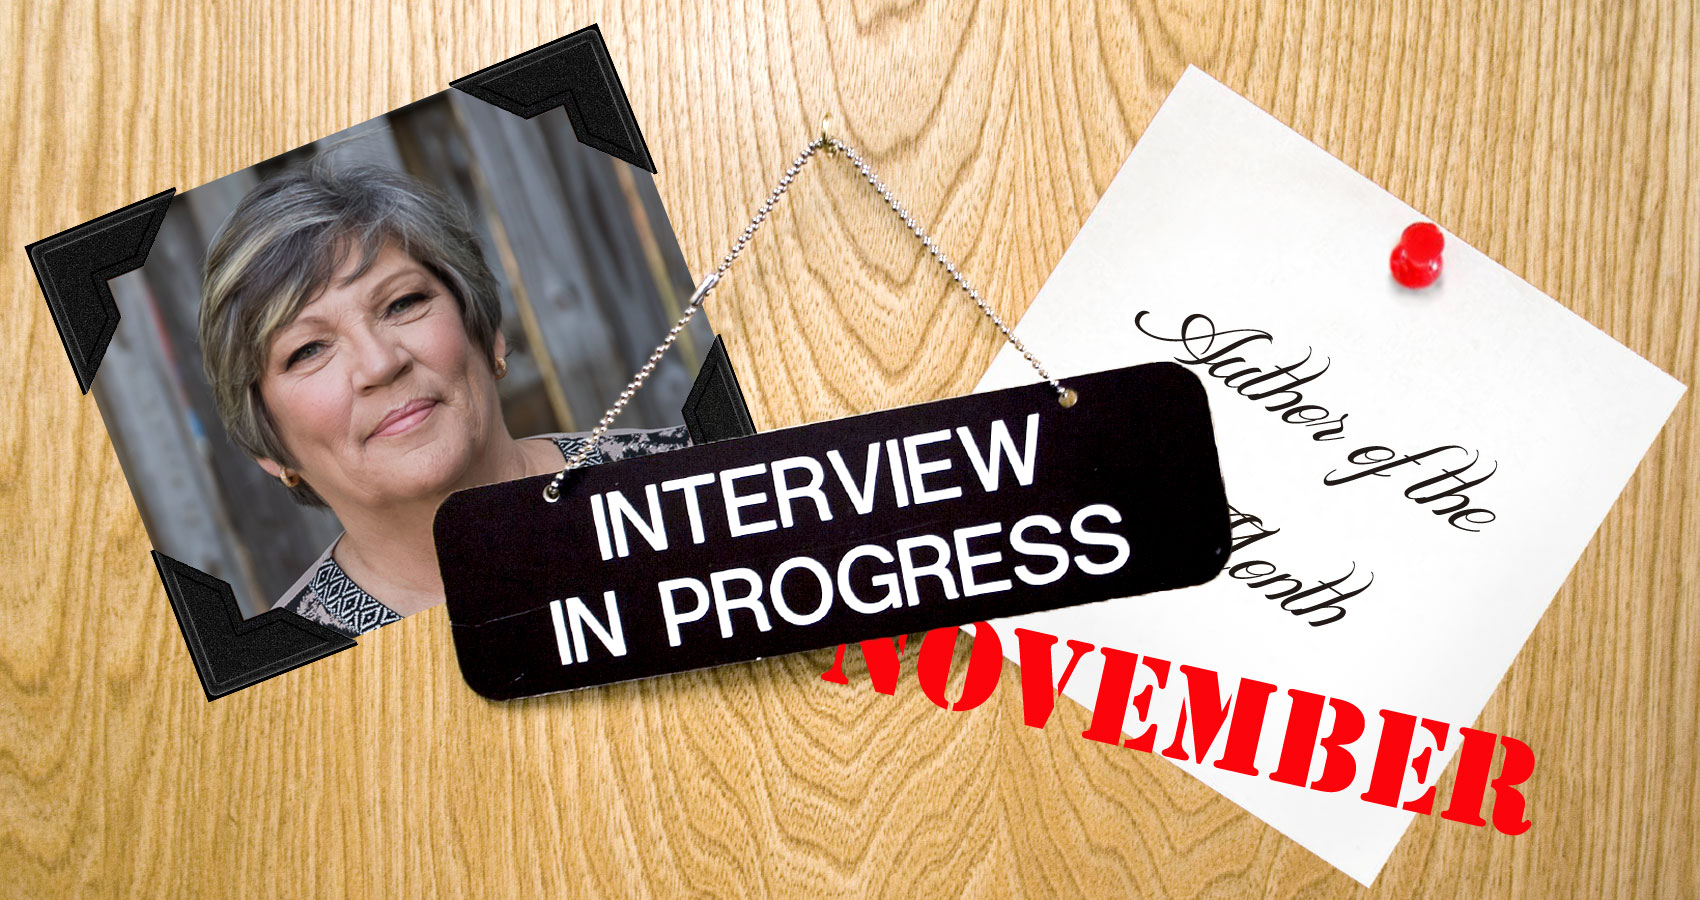 Interview Q&A with Dawn DeBraal, a writer at Spillwords.com